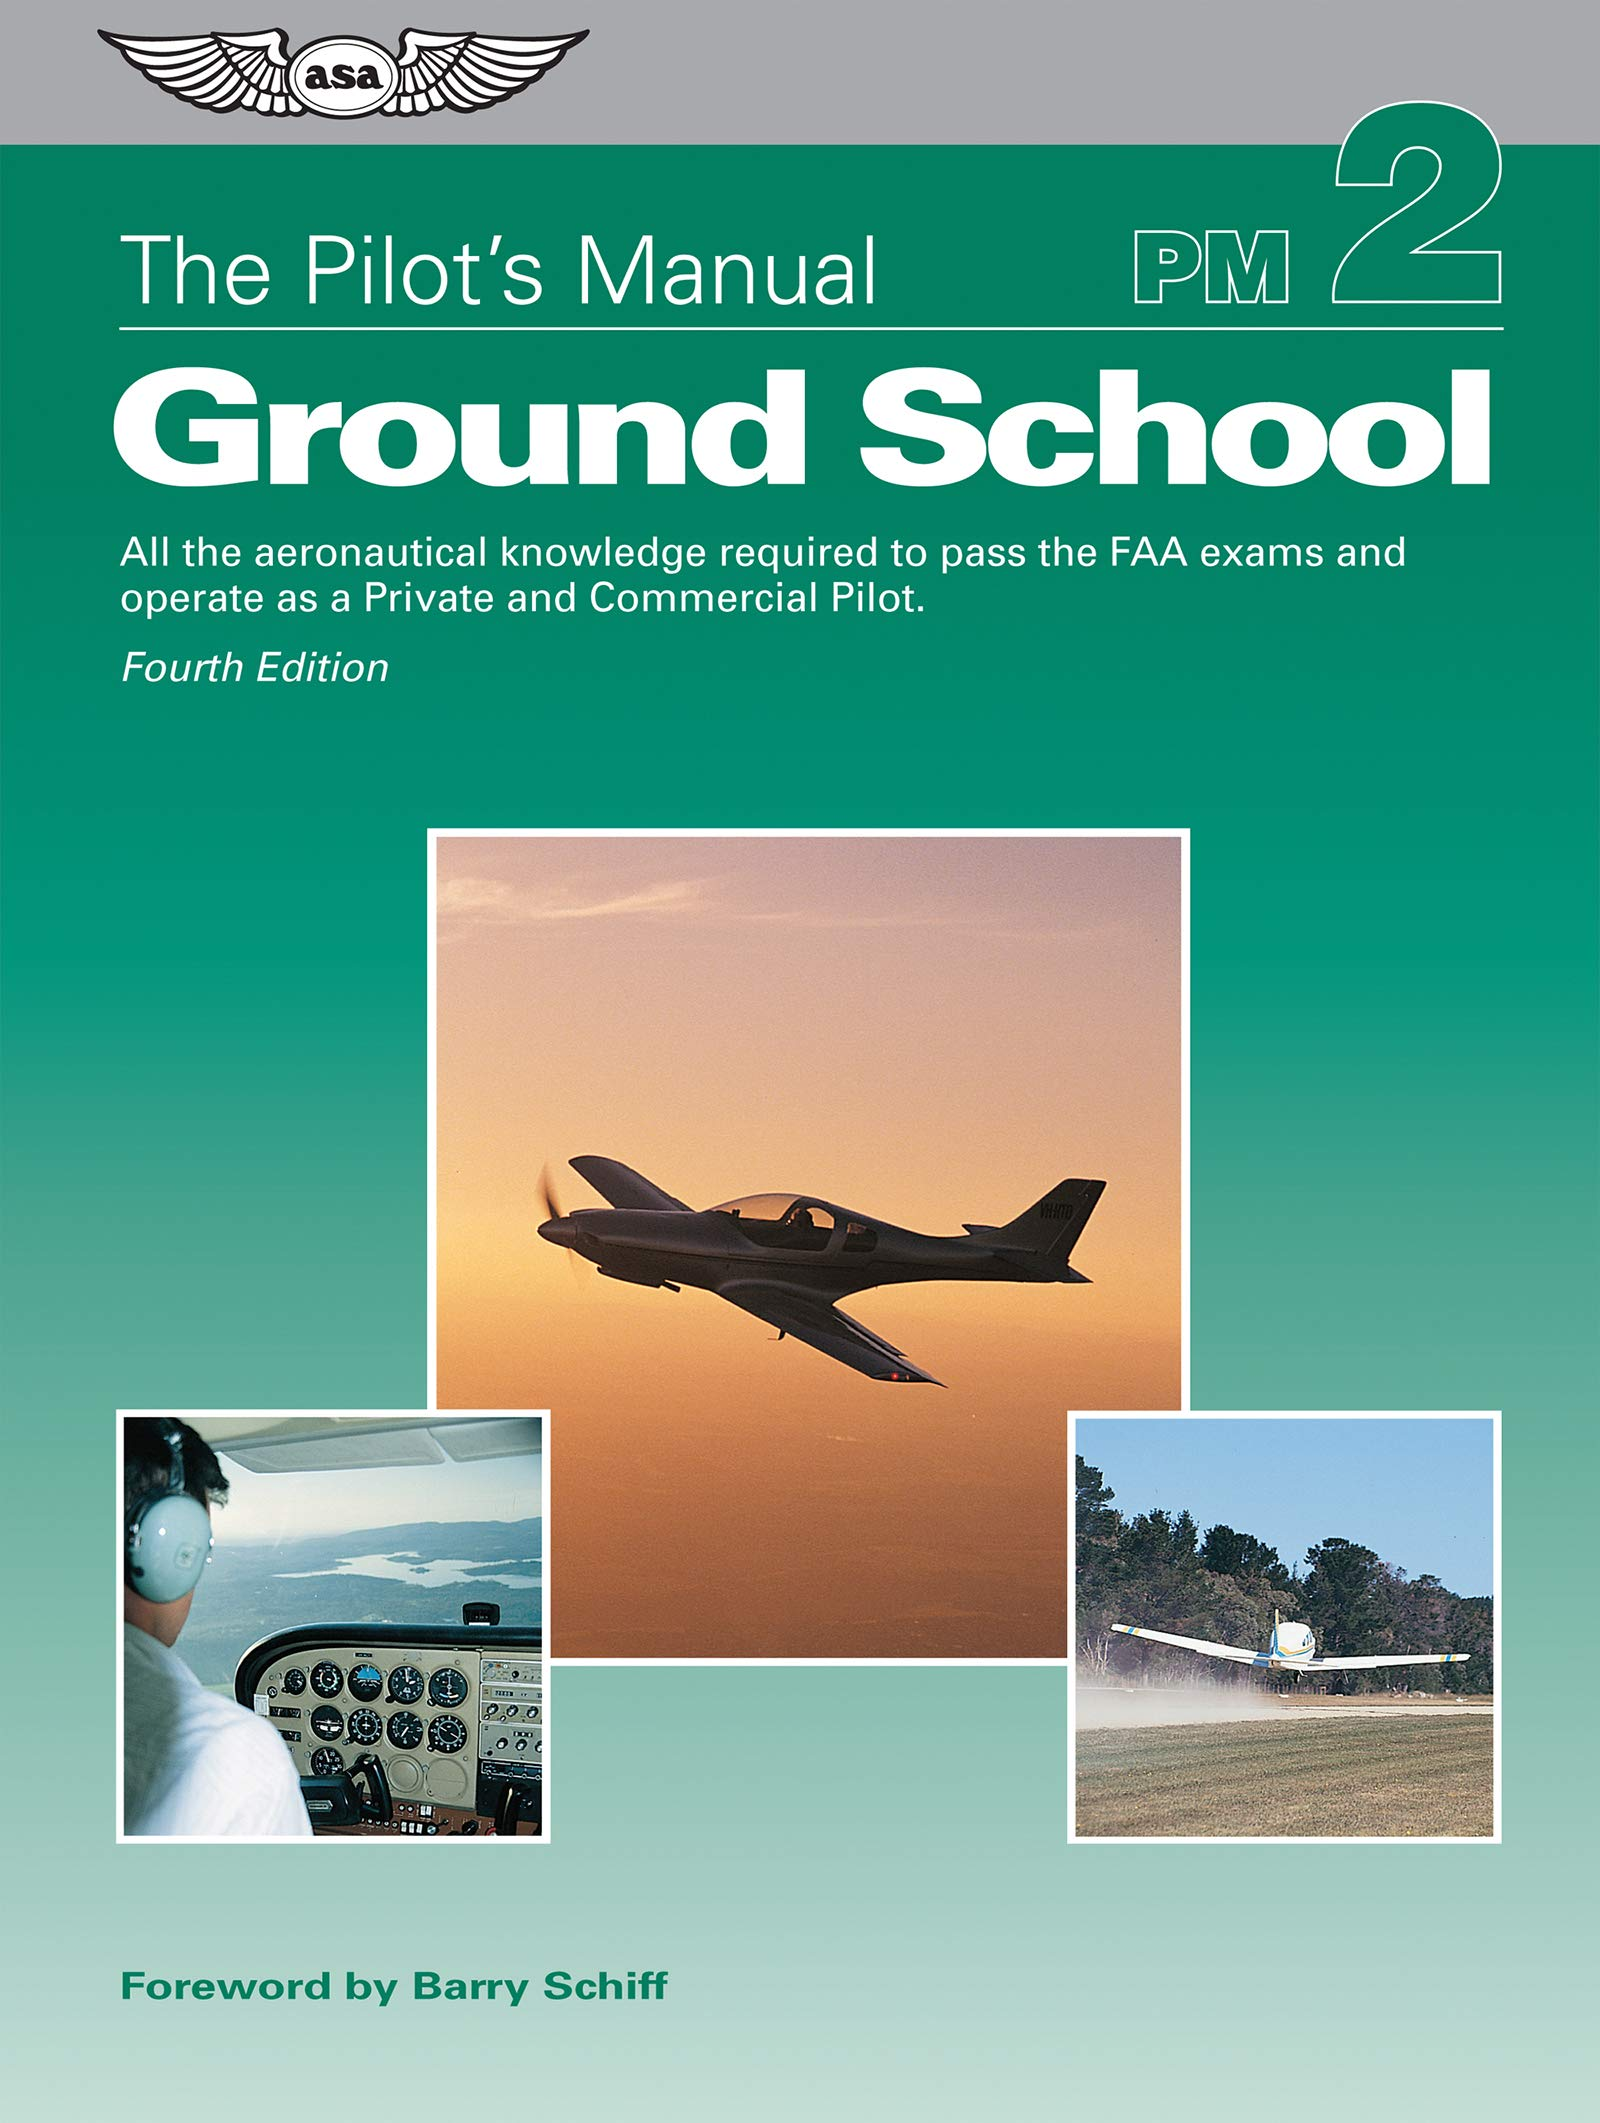 The Pilot's Manual: Ground School: All the aeronautical knowledge required to pass the FAA exams and operate as a Private and Commercial Pilot (The Pilot's Manual Series) by Aviation Supplies & Academics, Inc.